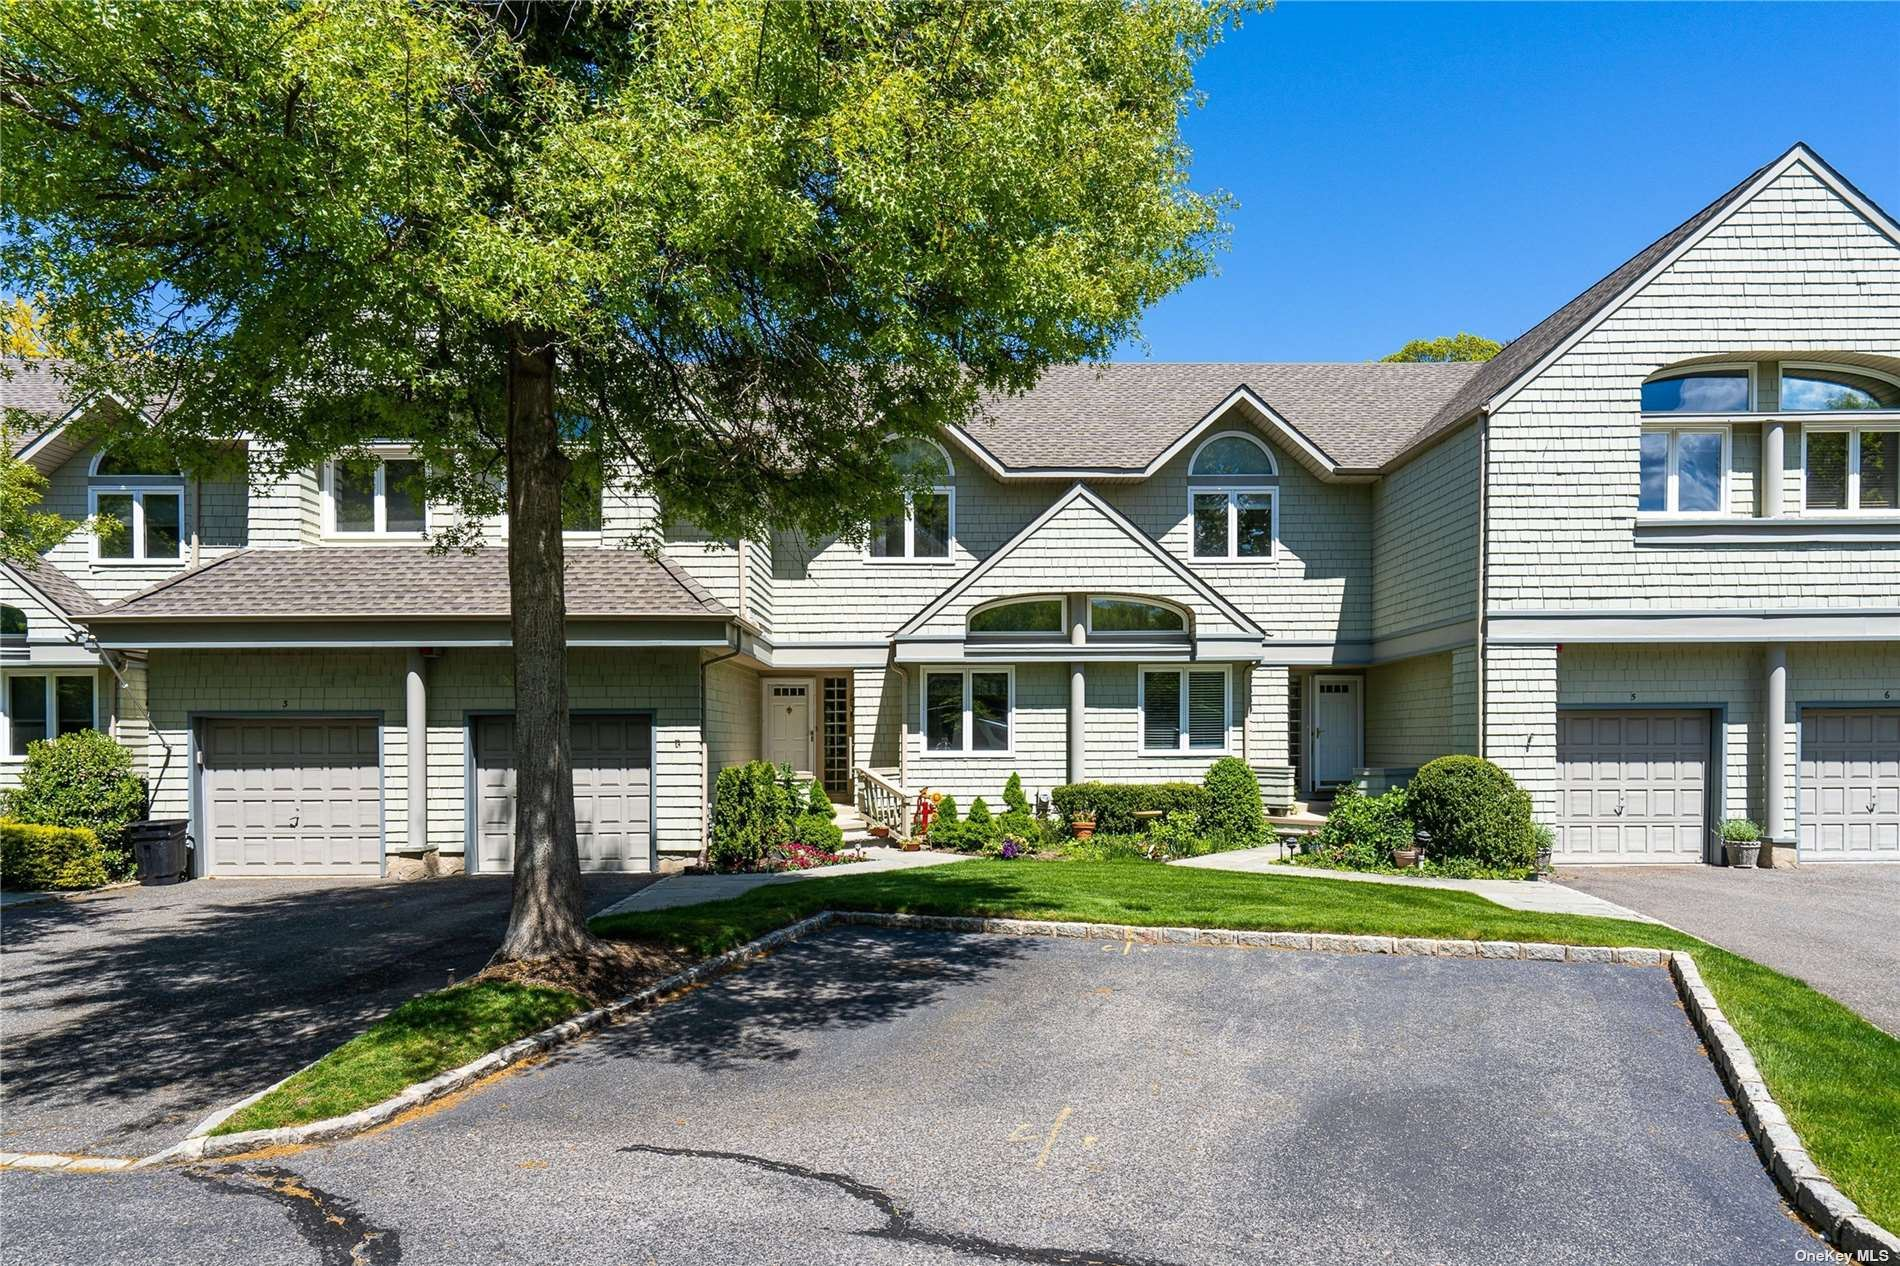 4 Insbrook Court, Huntington, NY 11743 - MLS#: 3286550